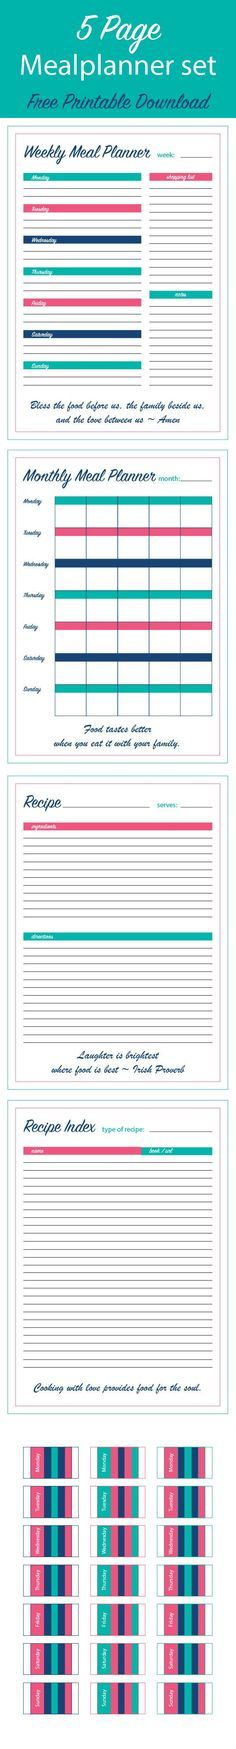 Free printable meal planner: plan your family meals and use this meal plan for healthy eating. Implement all those family dinner ideas with these monthly and weekly meal plan templates.